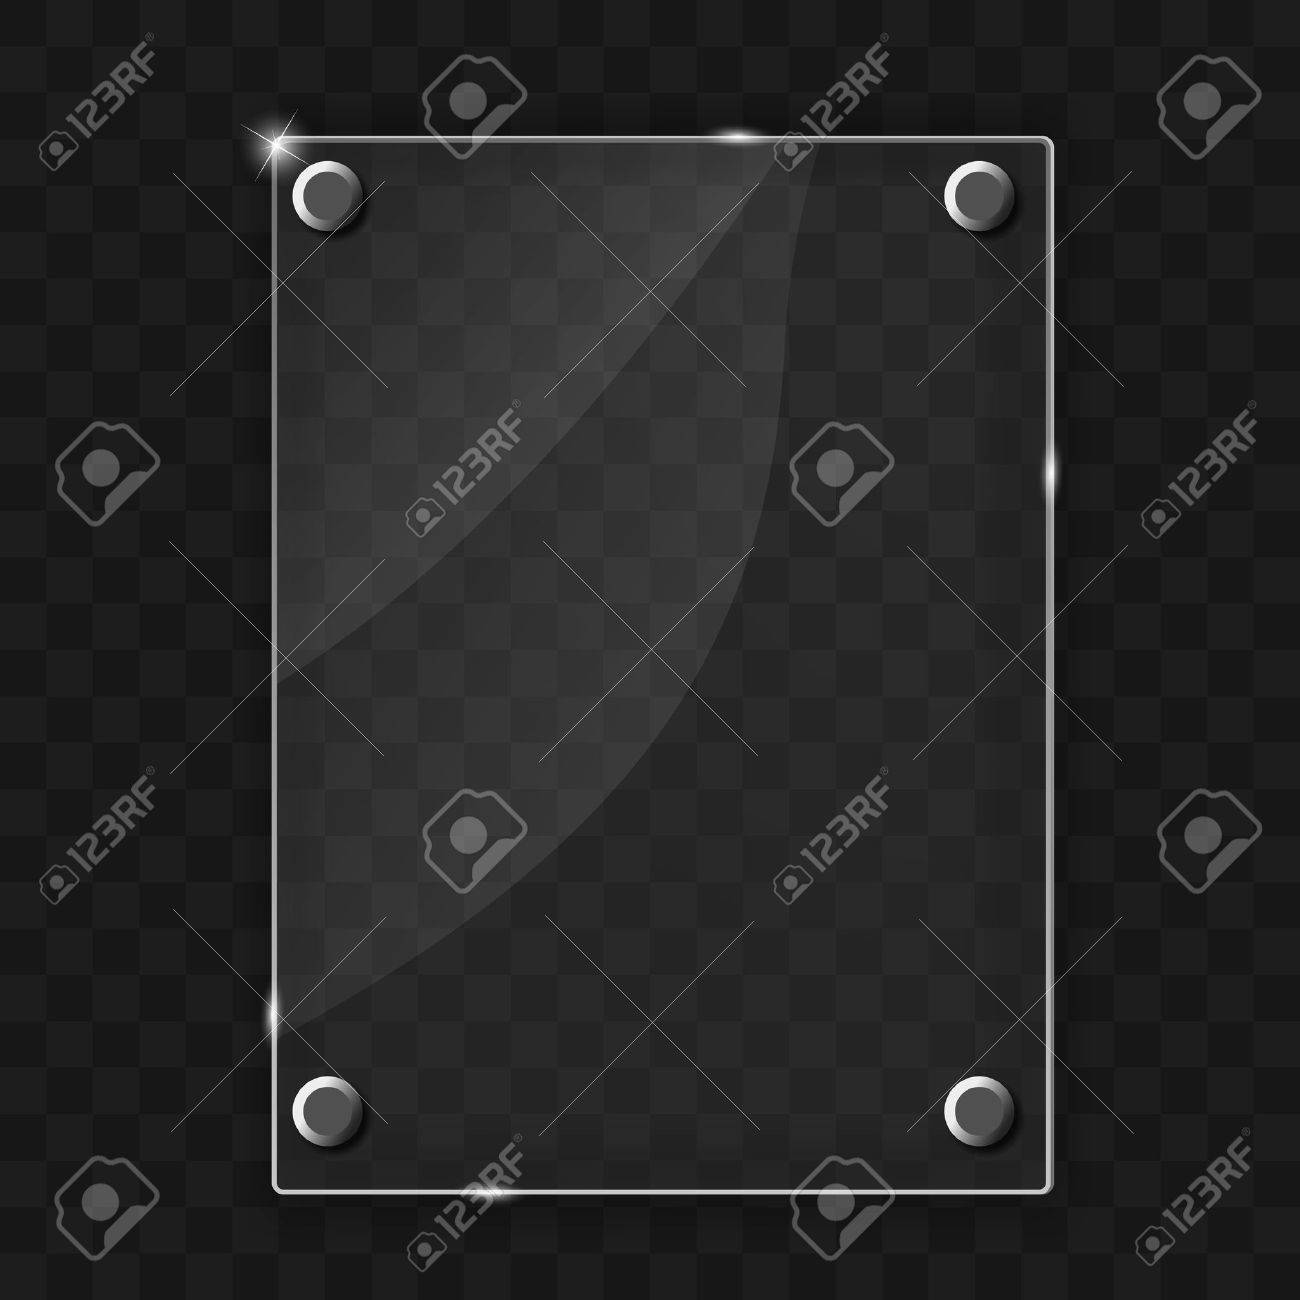 Glass frame on abstract metal background  Vector illustration Stock Vector - 19658168